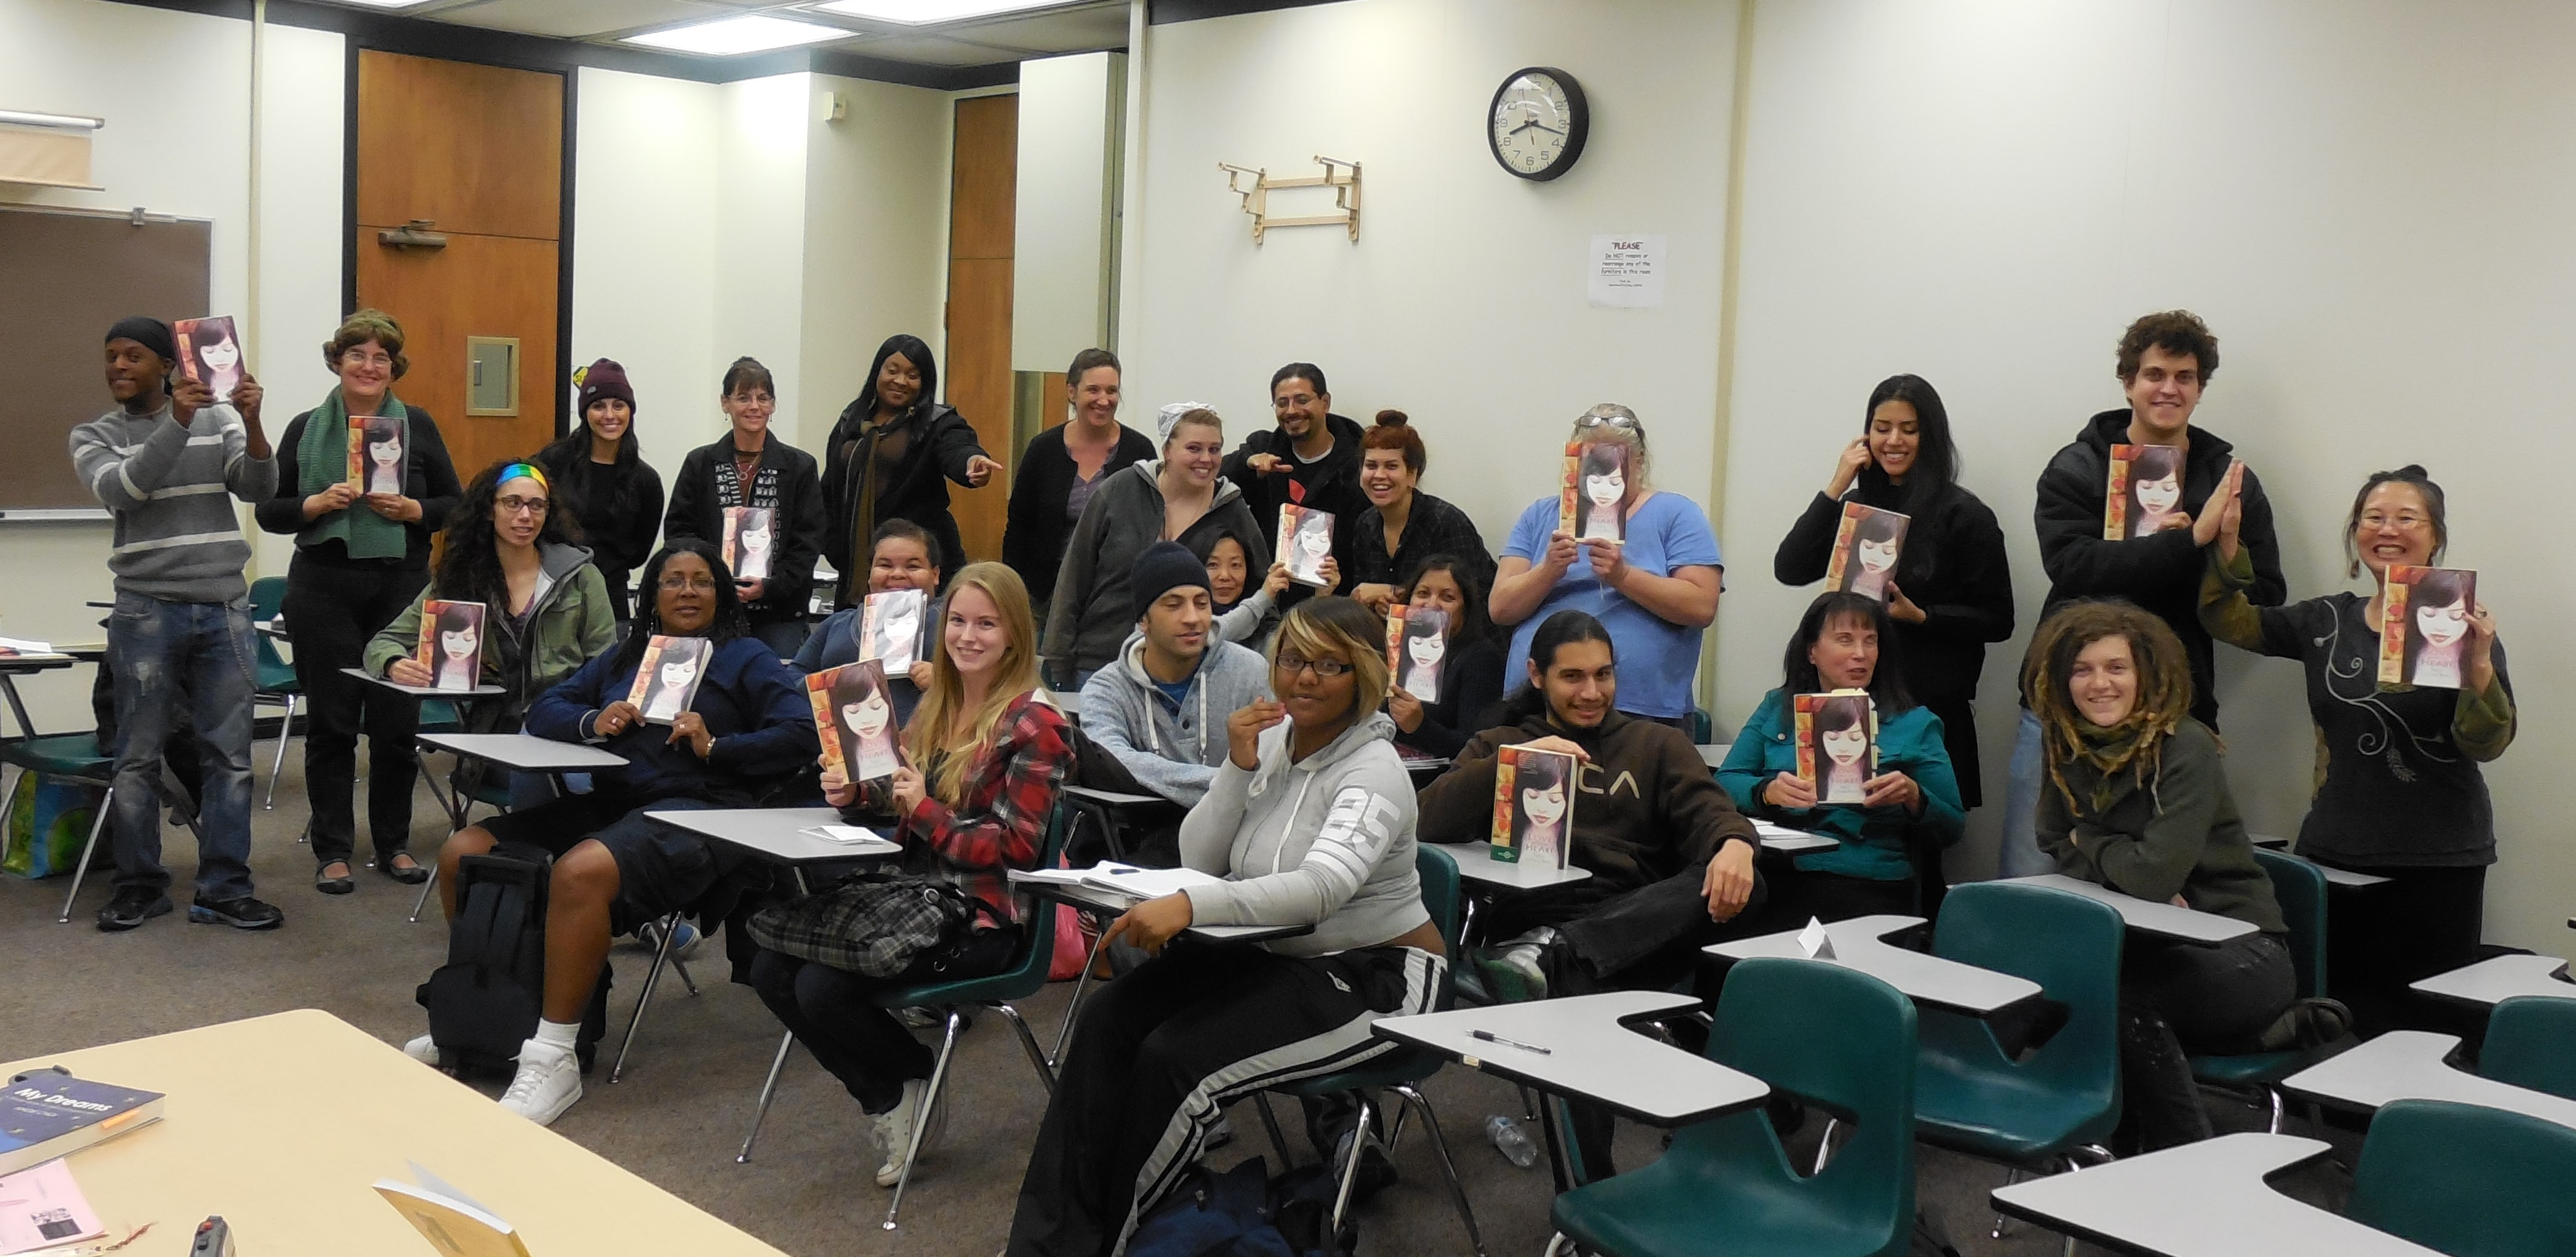 author Teresa LeYung-Ryan visits Professor Sheryl Fairchild and Women In Psychology students, photo by MYW